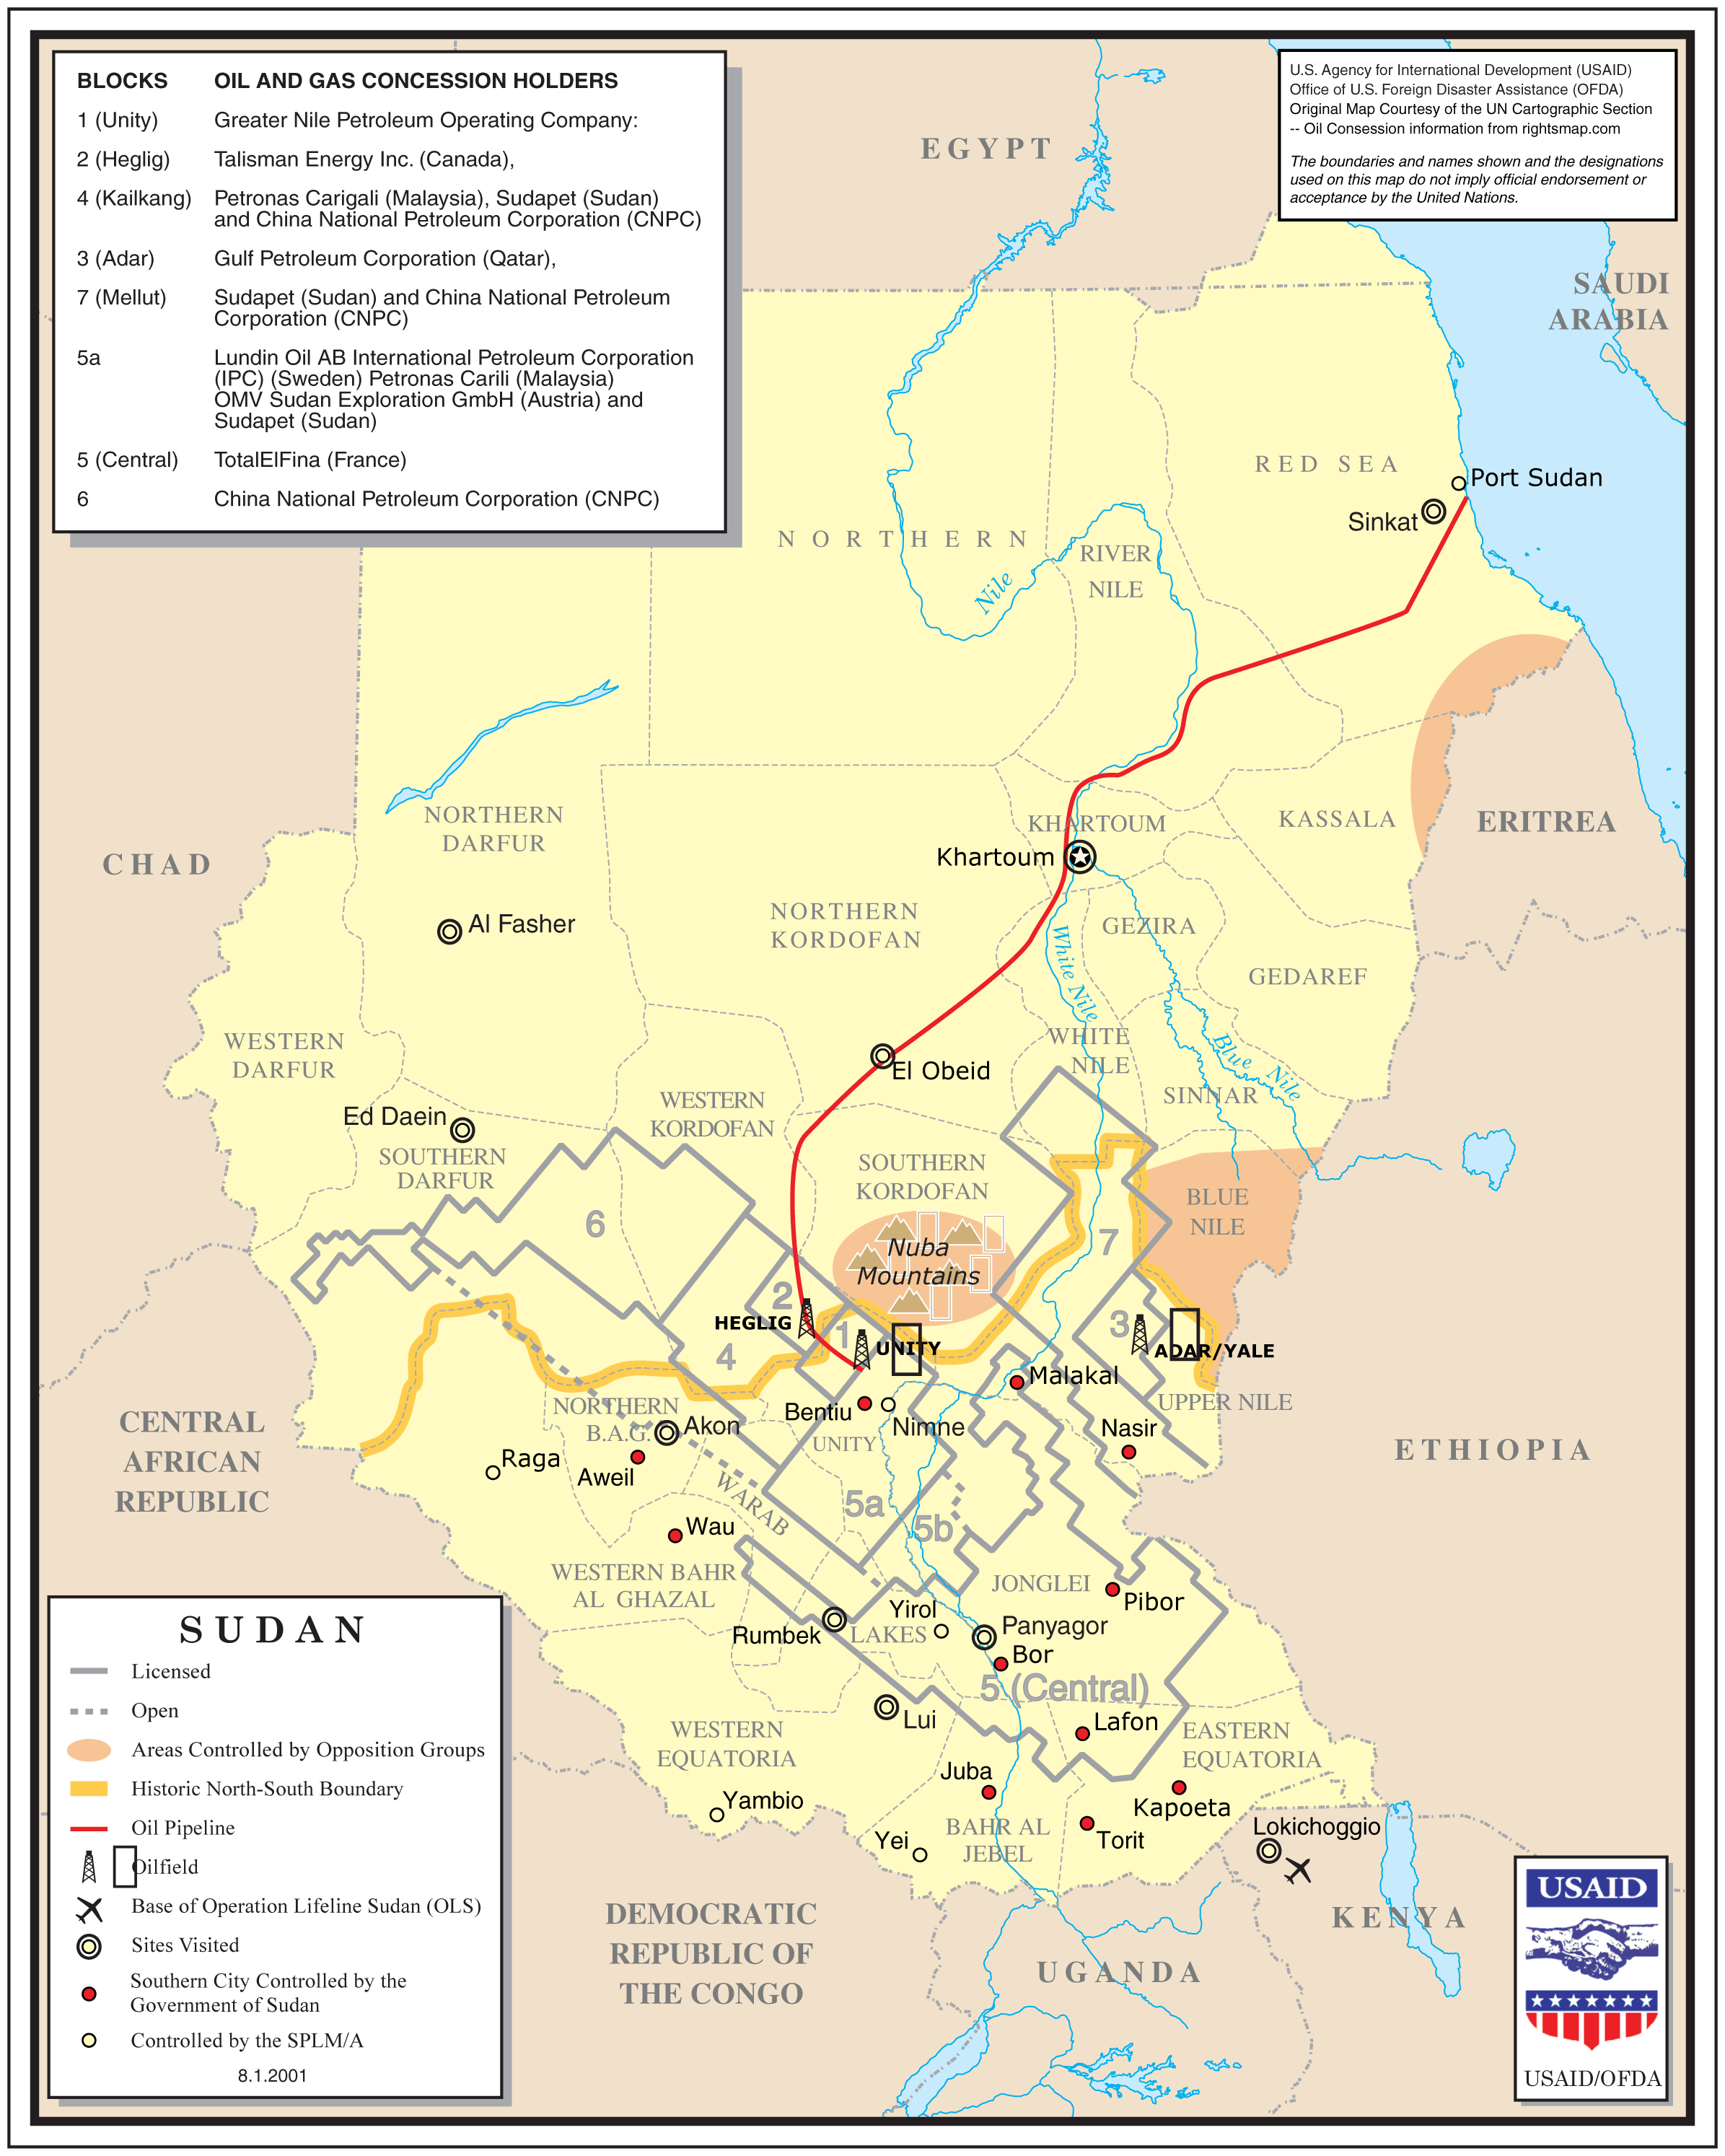 Sudan Oil And Gas Concession Holders large map